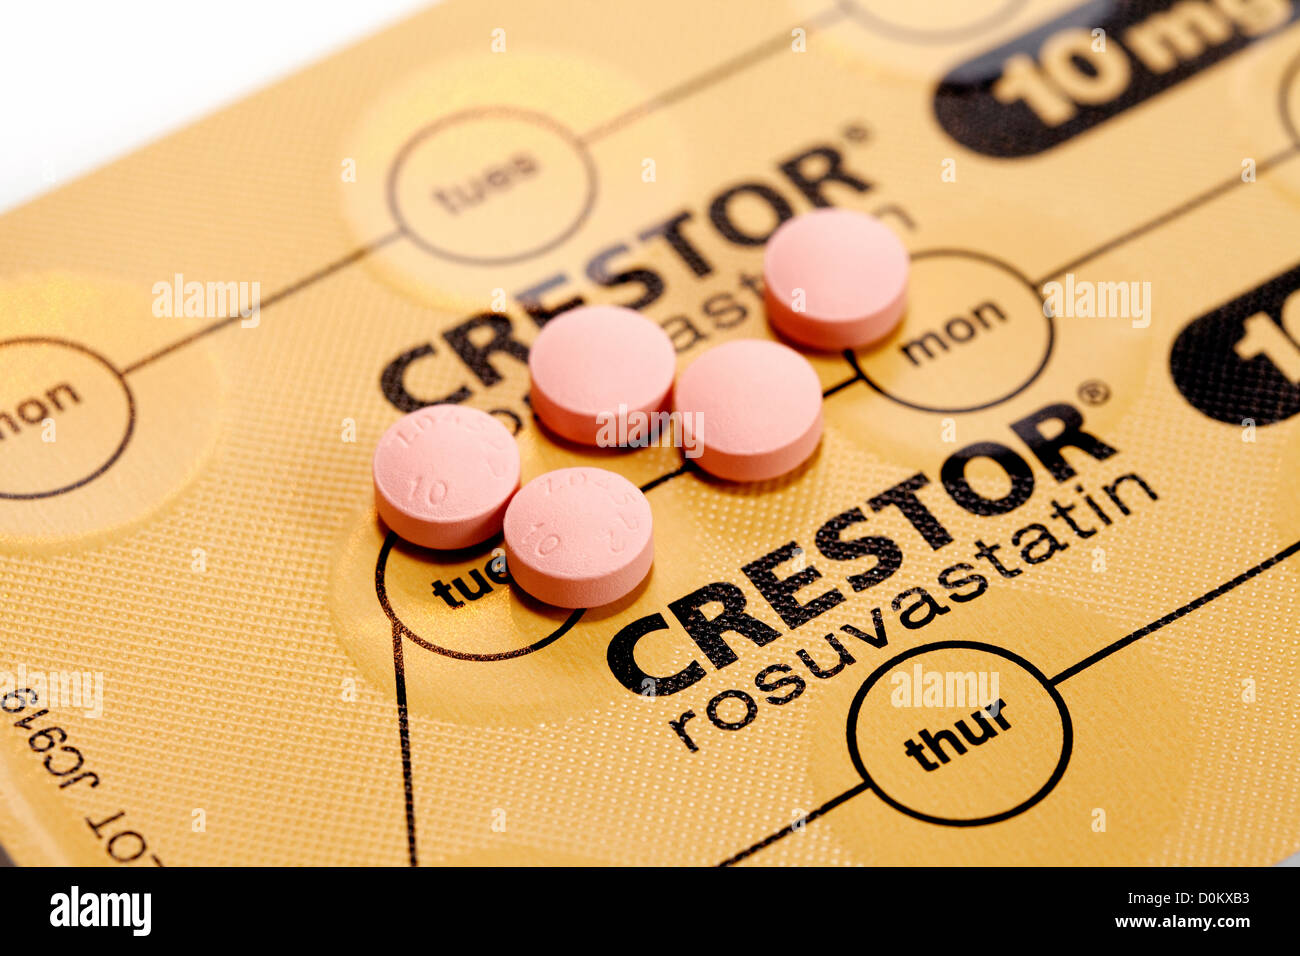 Crestor statin tablets otherwise known as Rosuvastatin one of the statins used for reduction of cholesterol - Stock Image